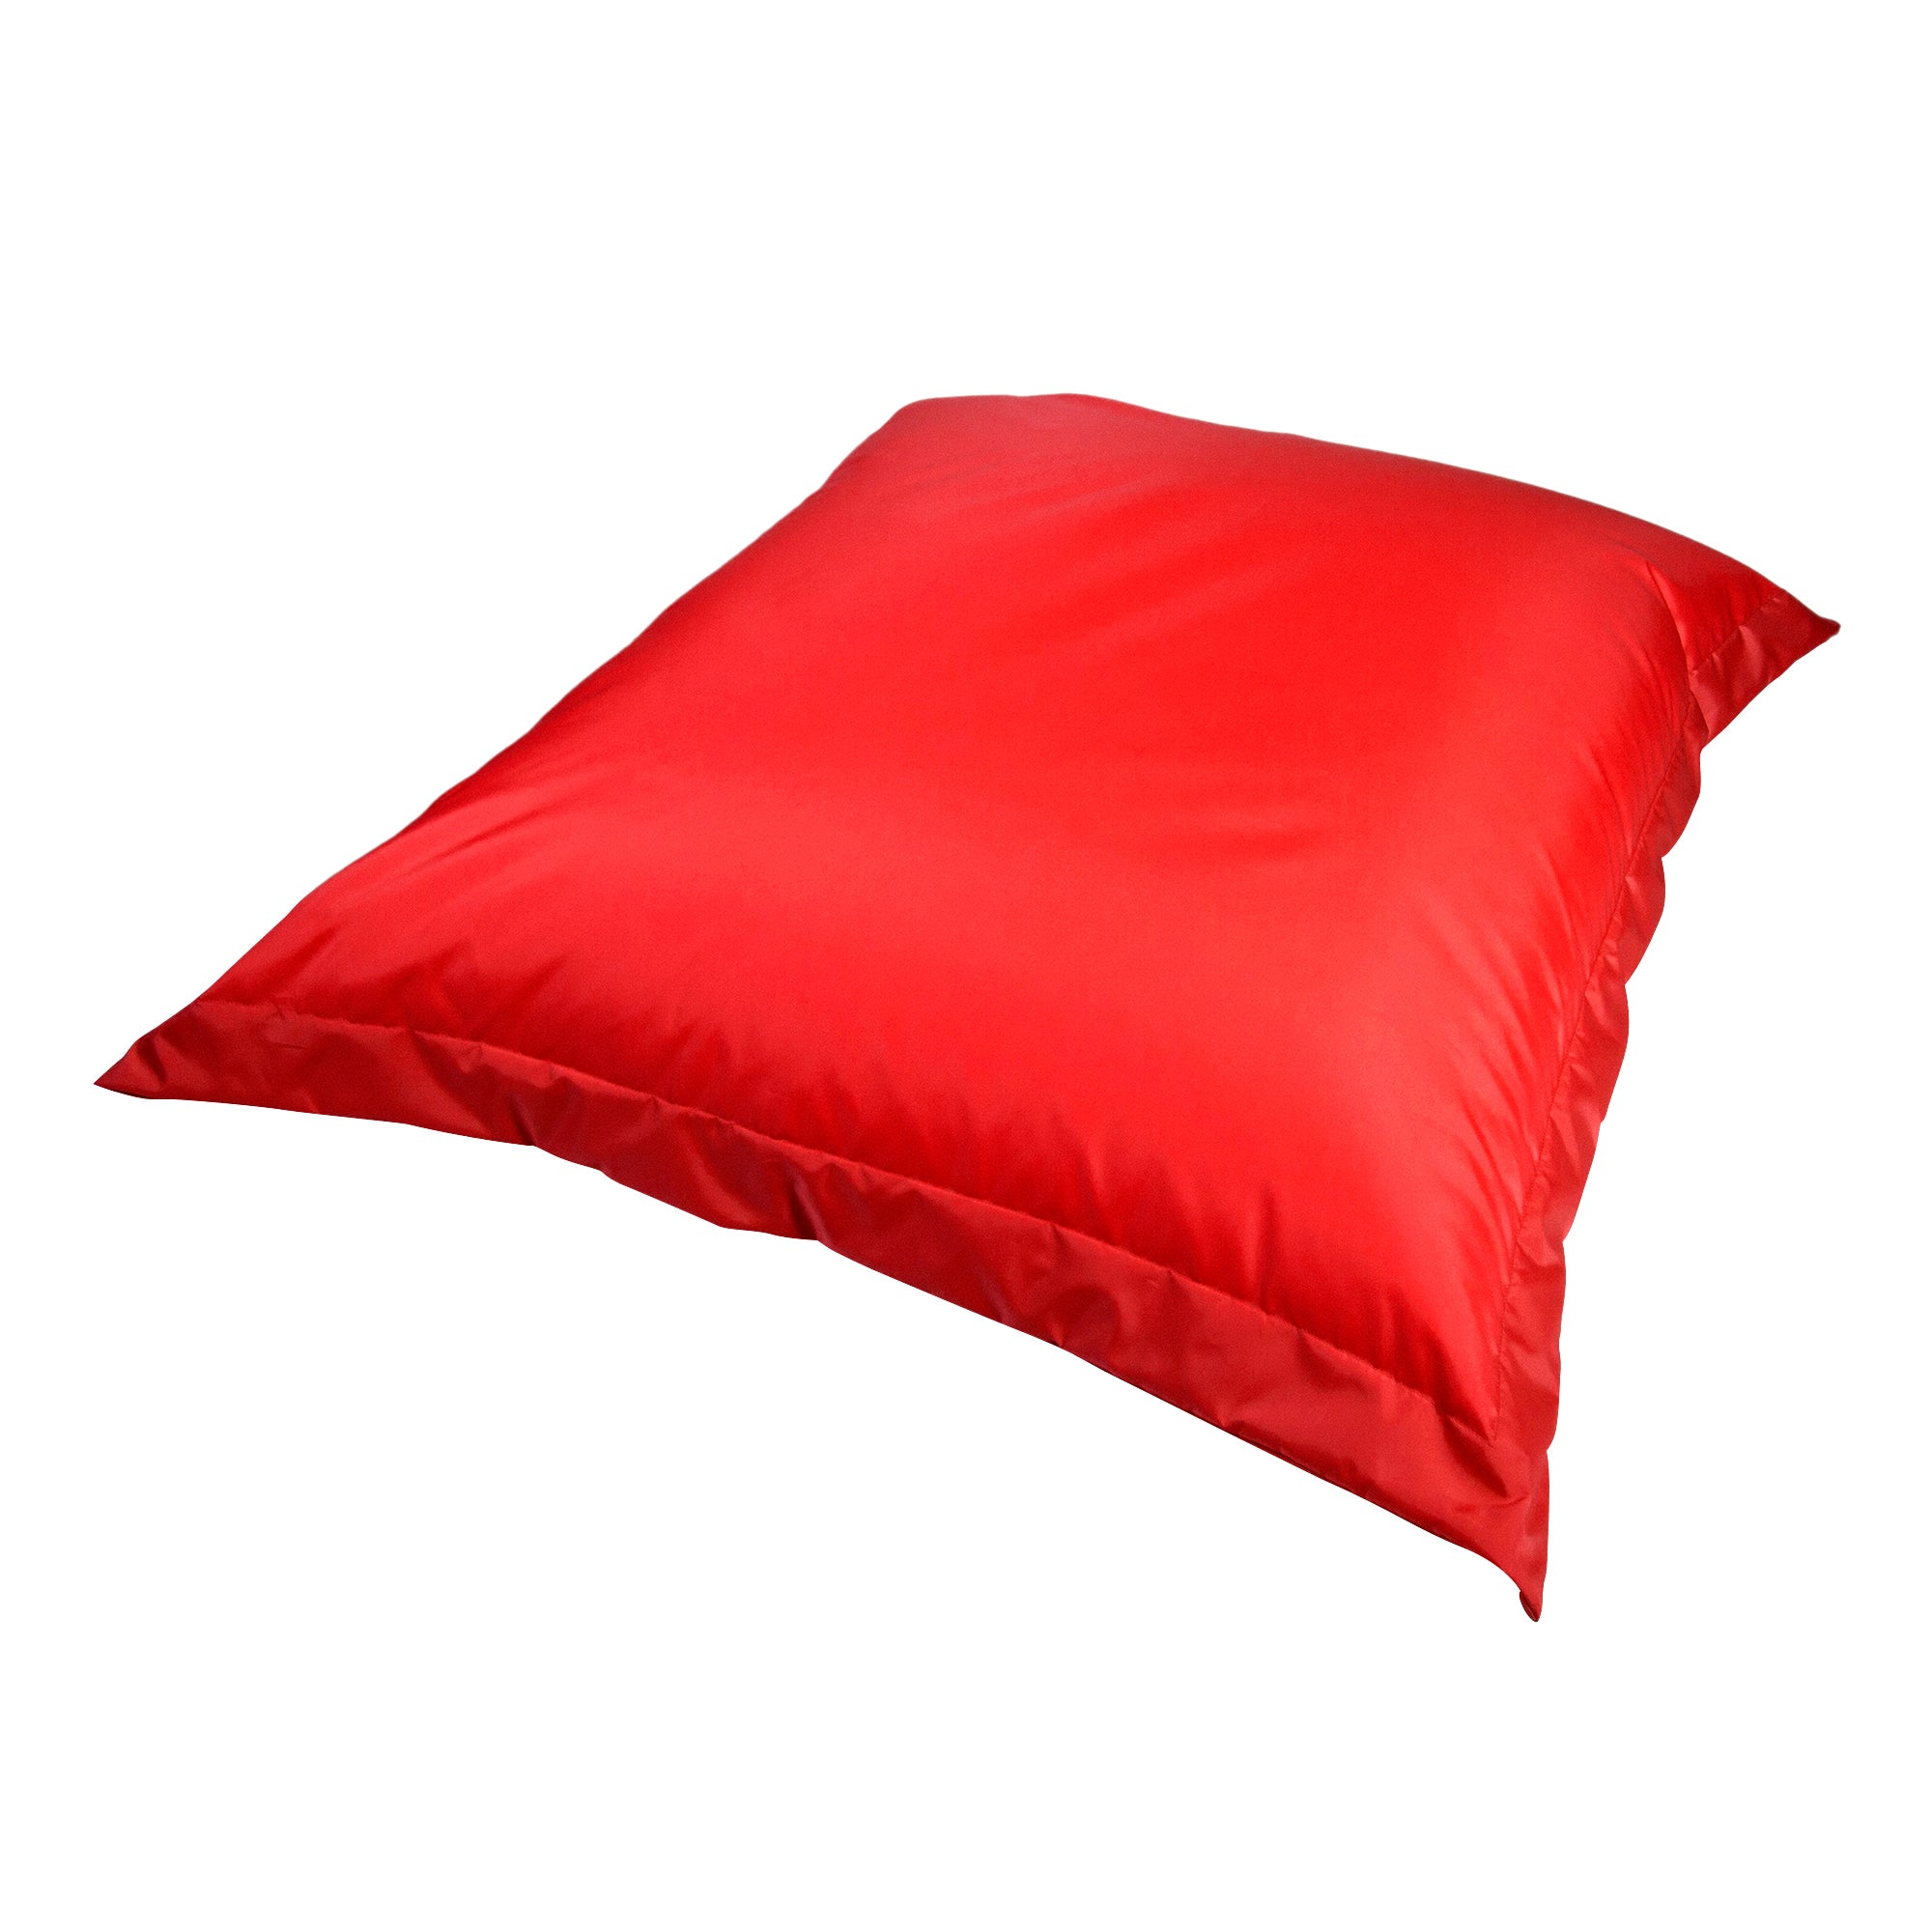 The Big One Drill Bean Bag